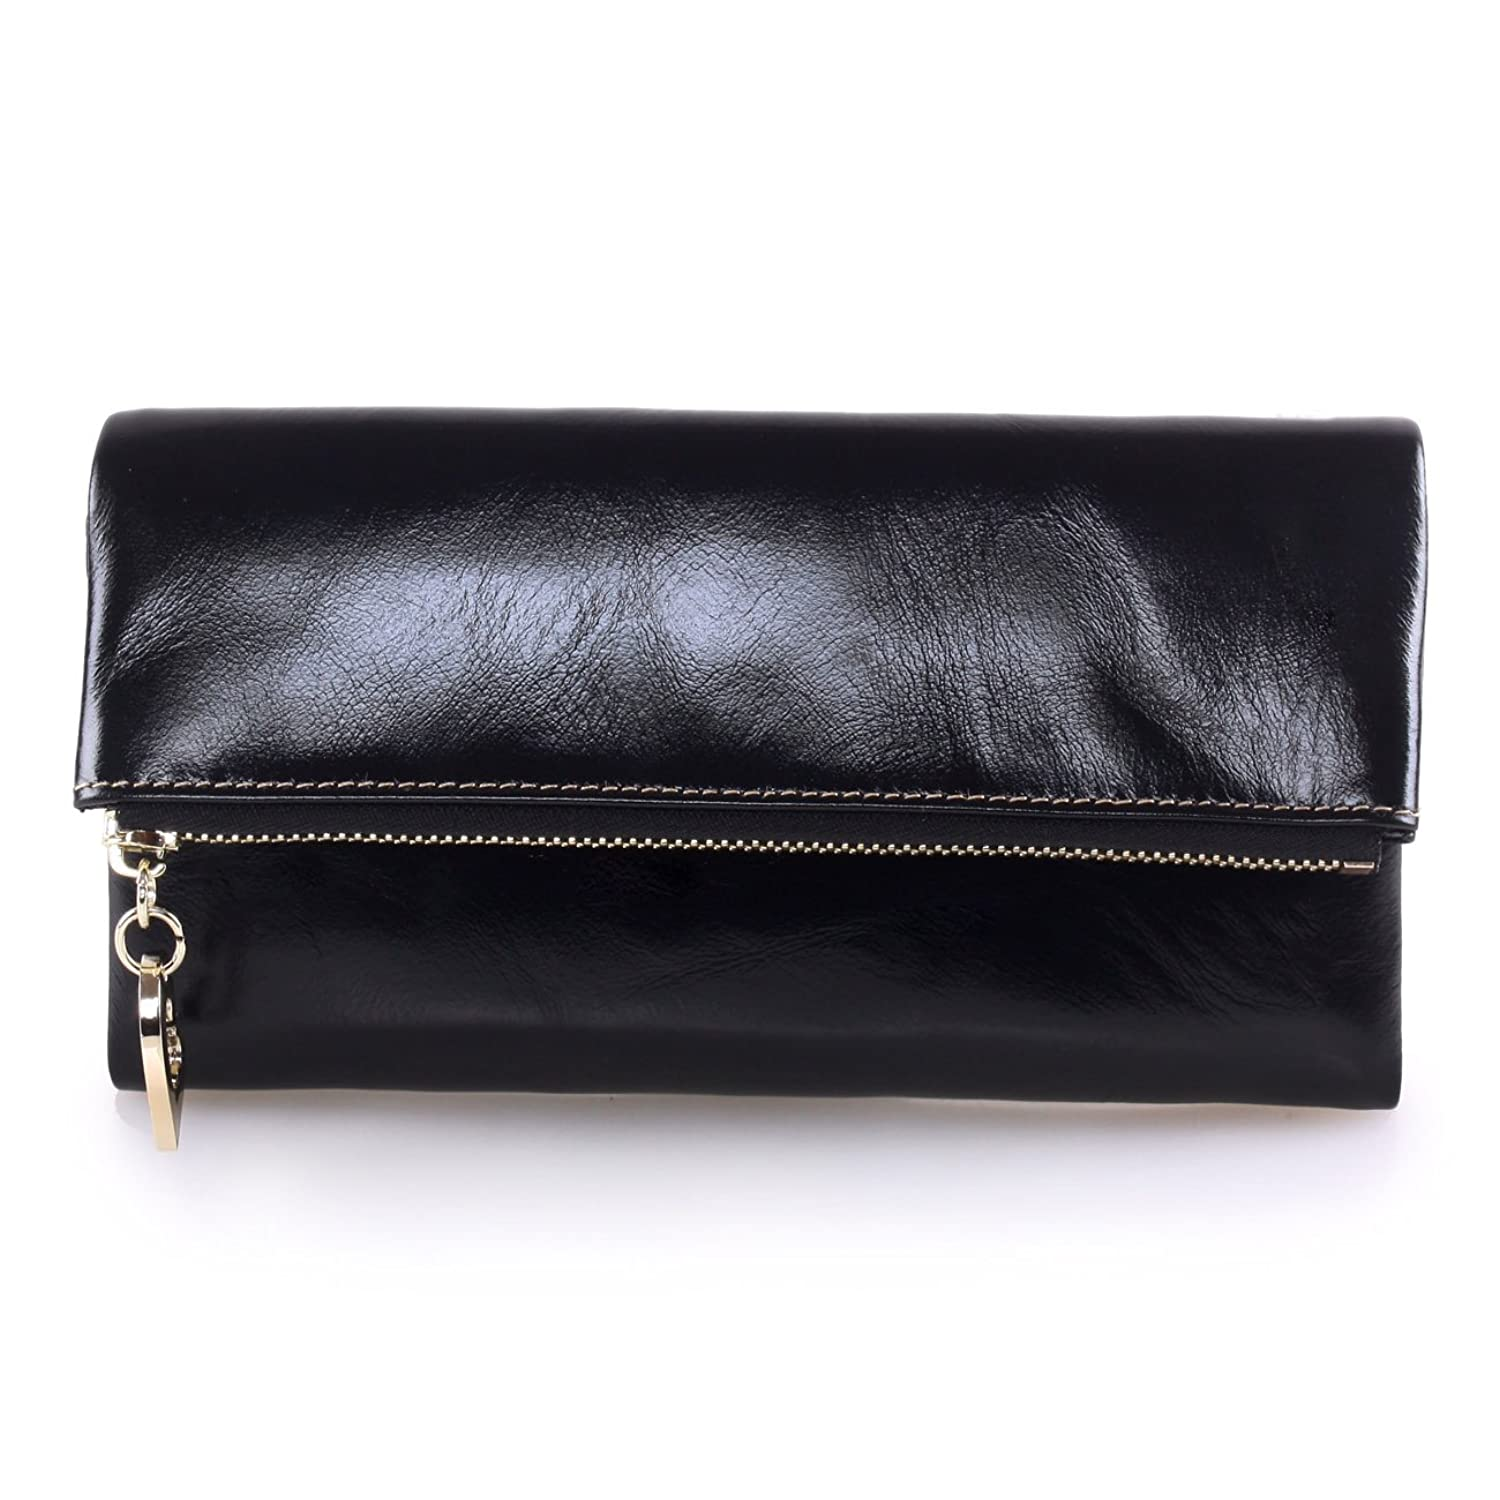 AINIMOER Women Long Leather Wallet Zipper Large Capacity Clutch Phone Holder Purse